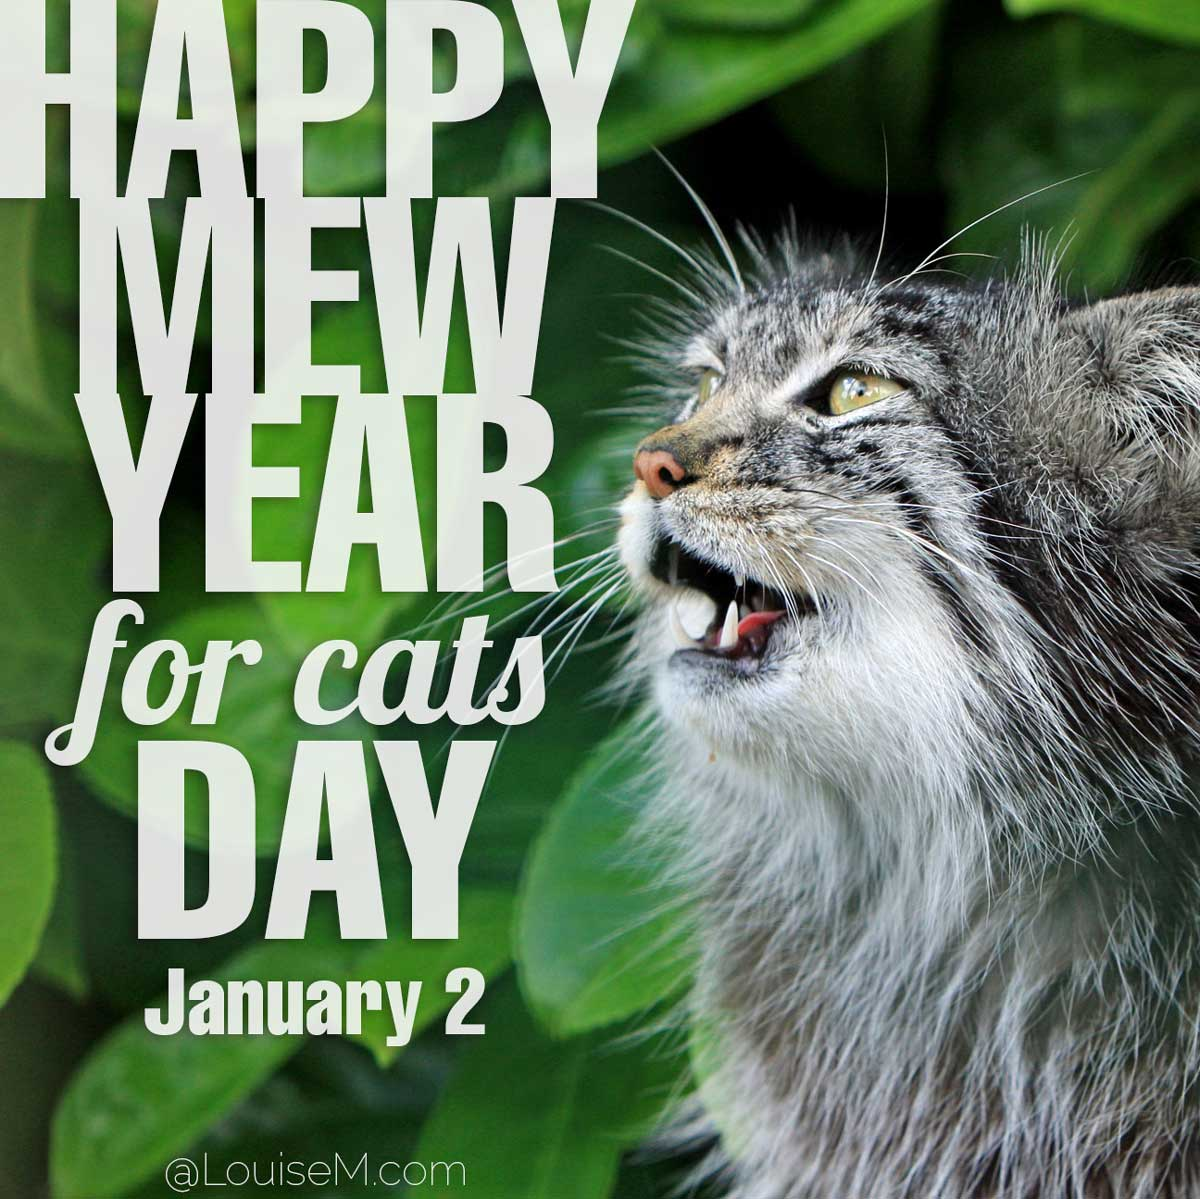 Happy Mew Year For Cats Day on gray cat photo.